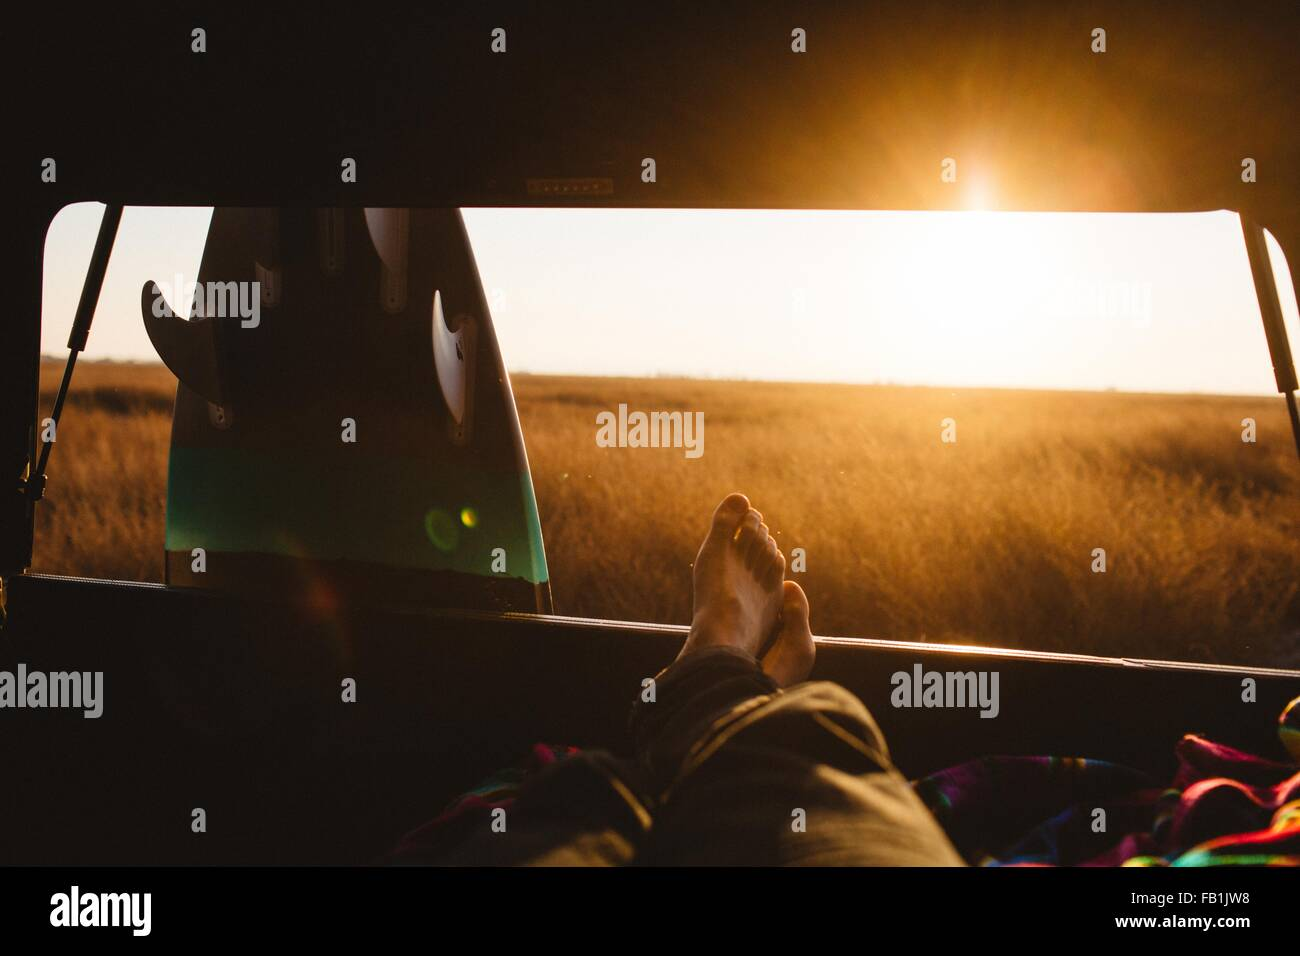 Male surfer with bare feet up in back of jeep at sunset, San Luis Obispo, California, USA - Stock Image